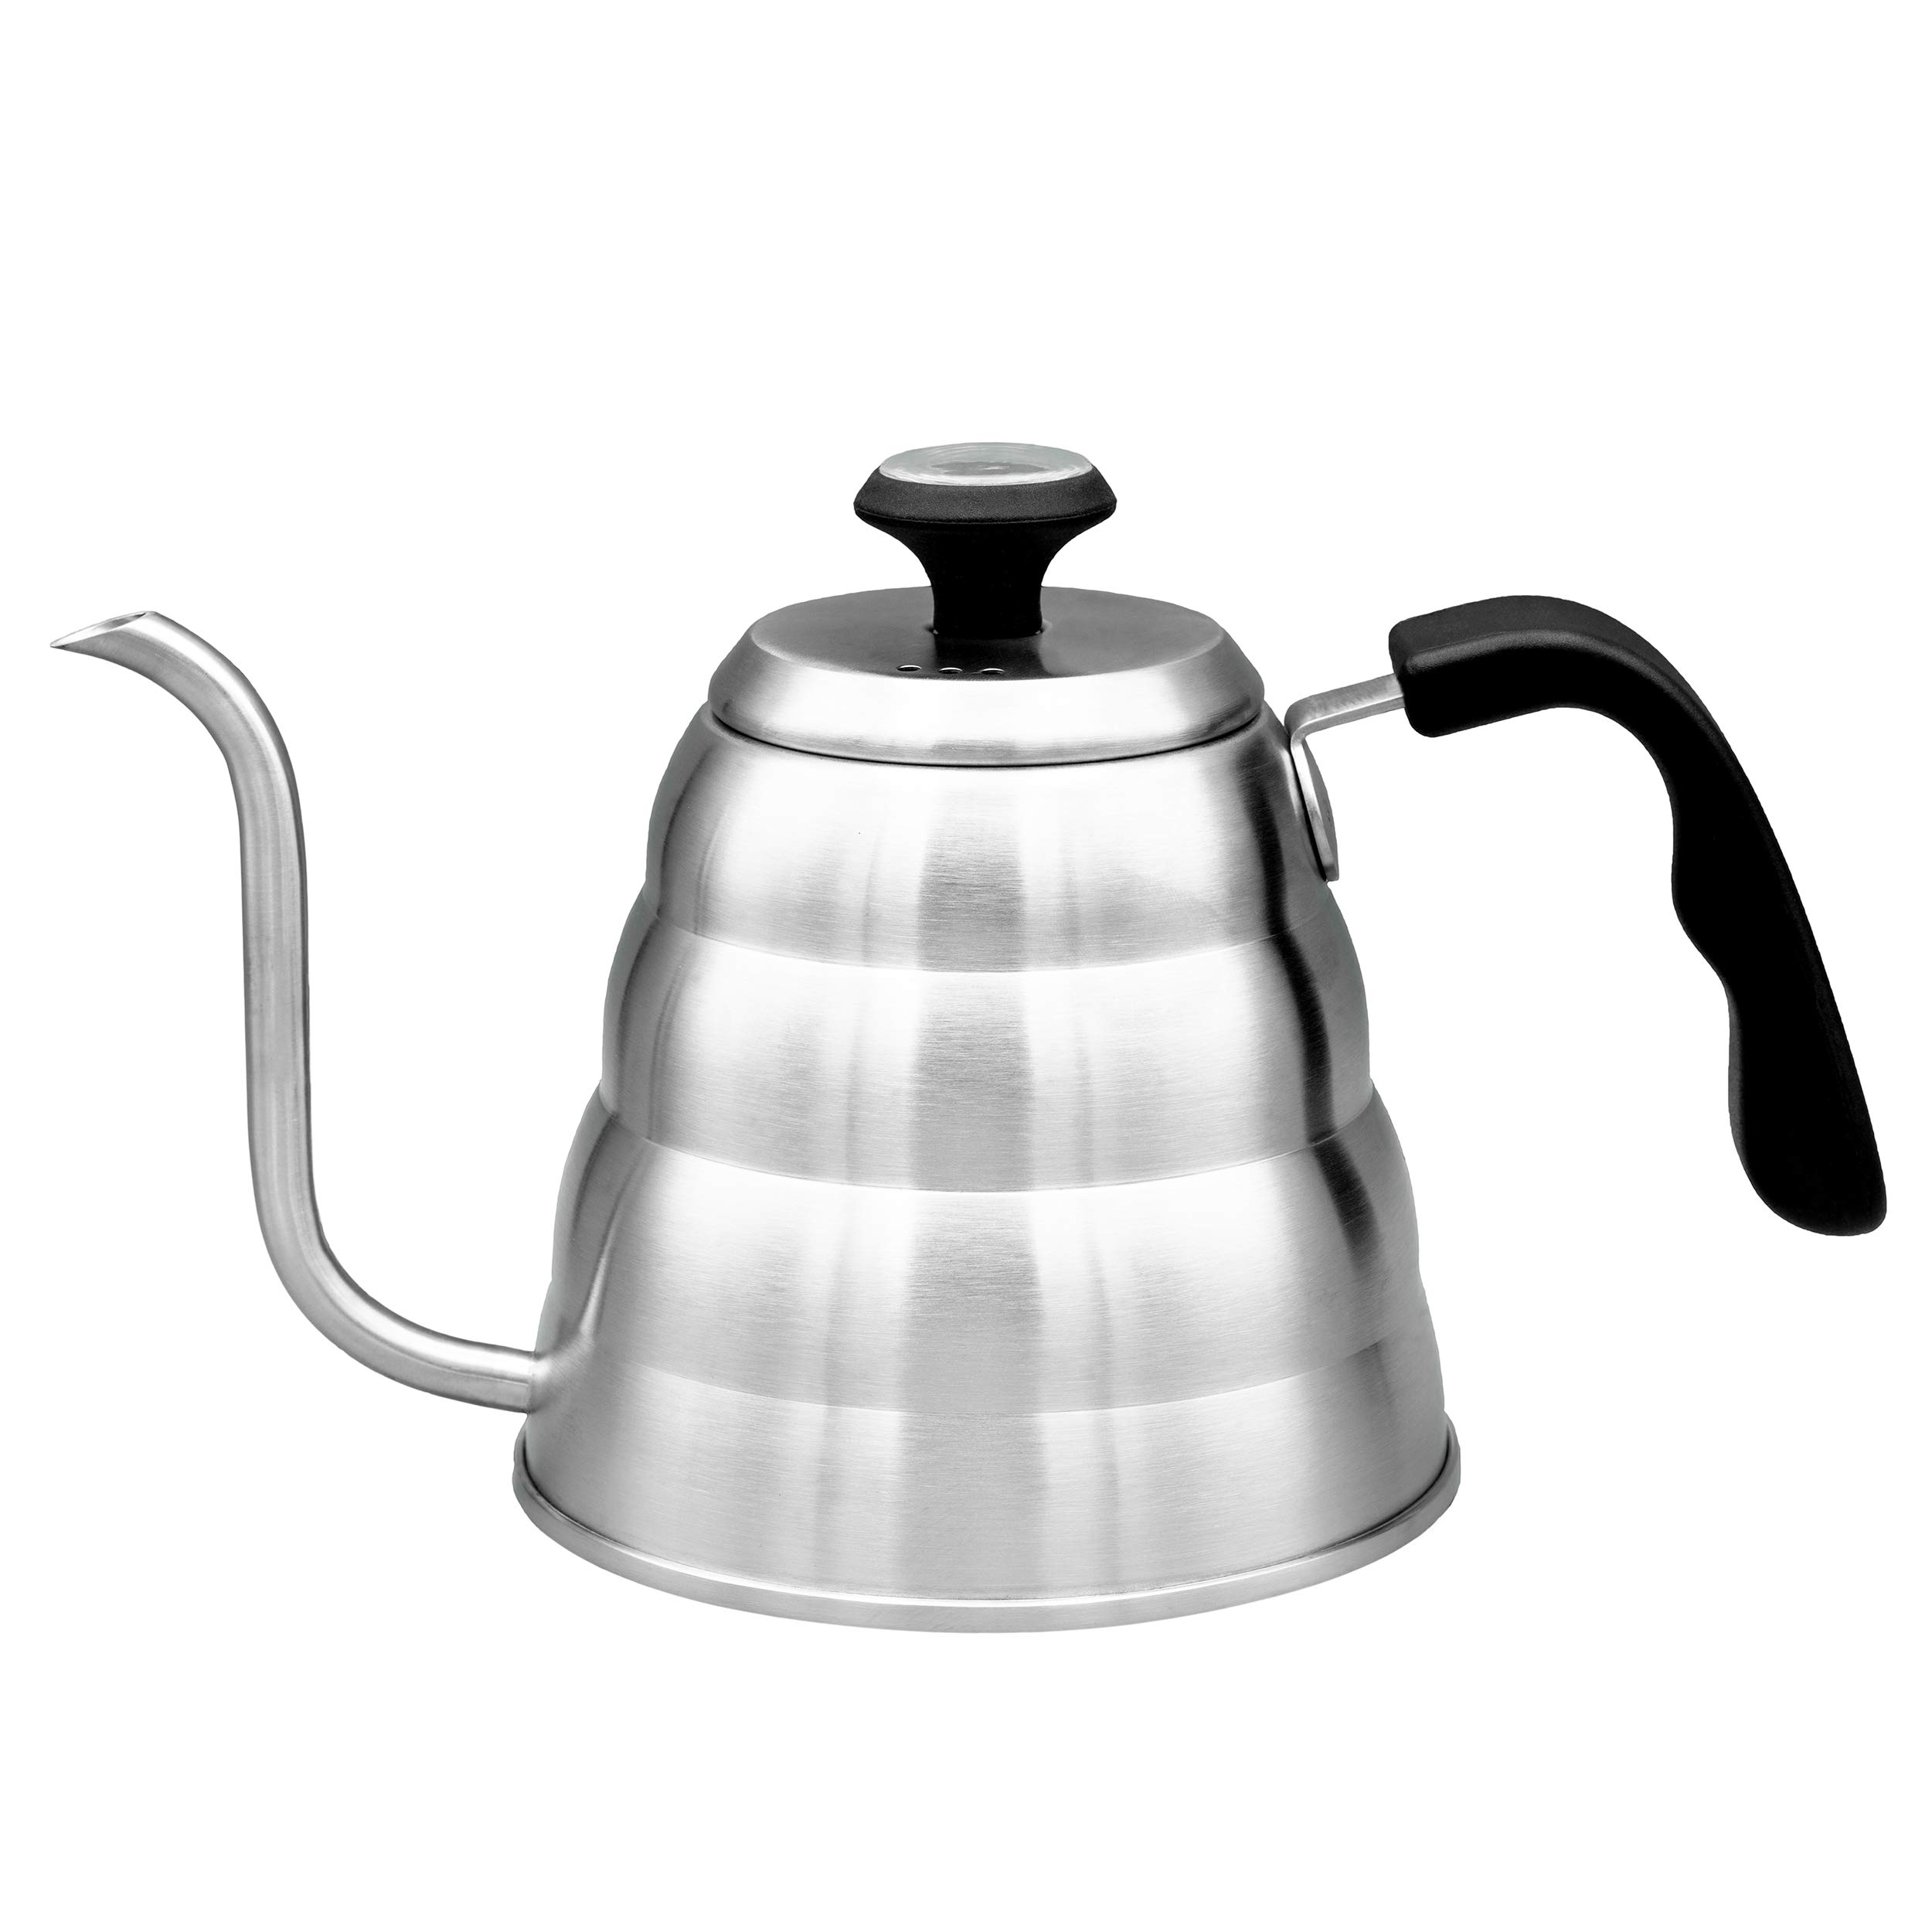 Pour Over Coffee Kettle With Gooseneck Spout by Culinary Foundry - 1.2 Liter Capacity Made of Premium Stainless Steel With Built-In Thermometer - Achieves Perfect Water Temperature Every Time by Culinary Foundry (Image #6)